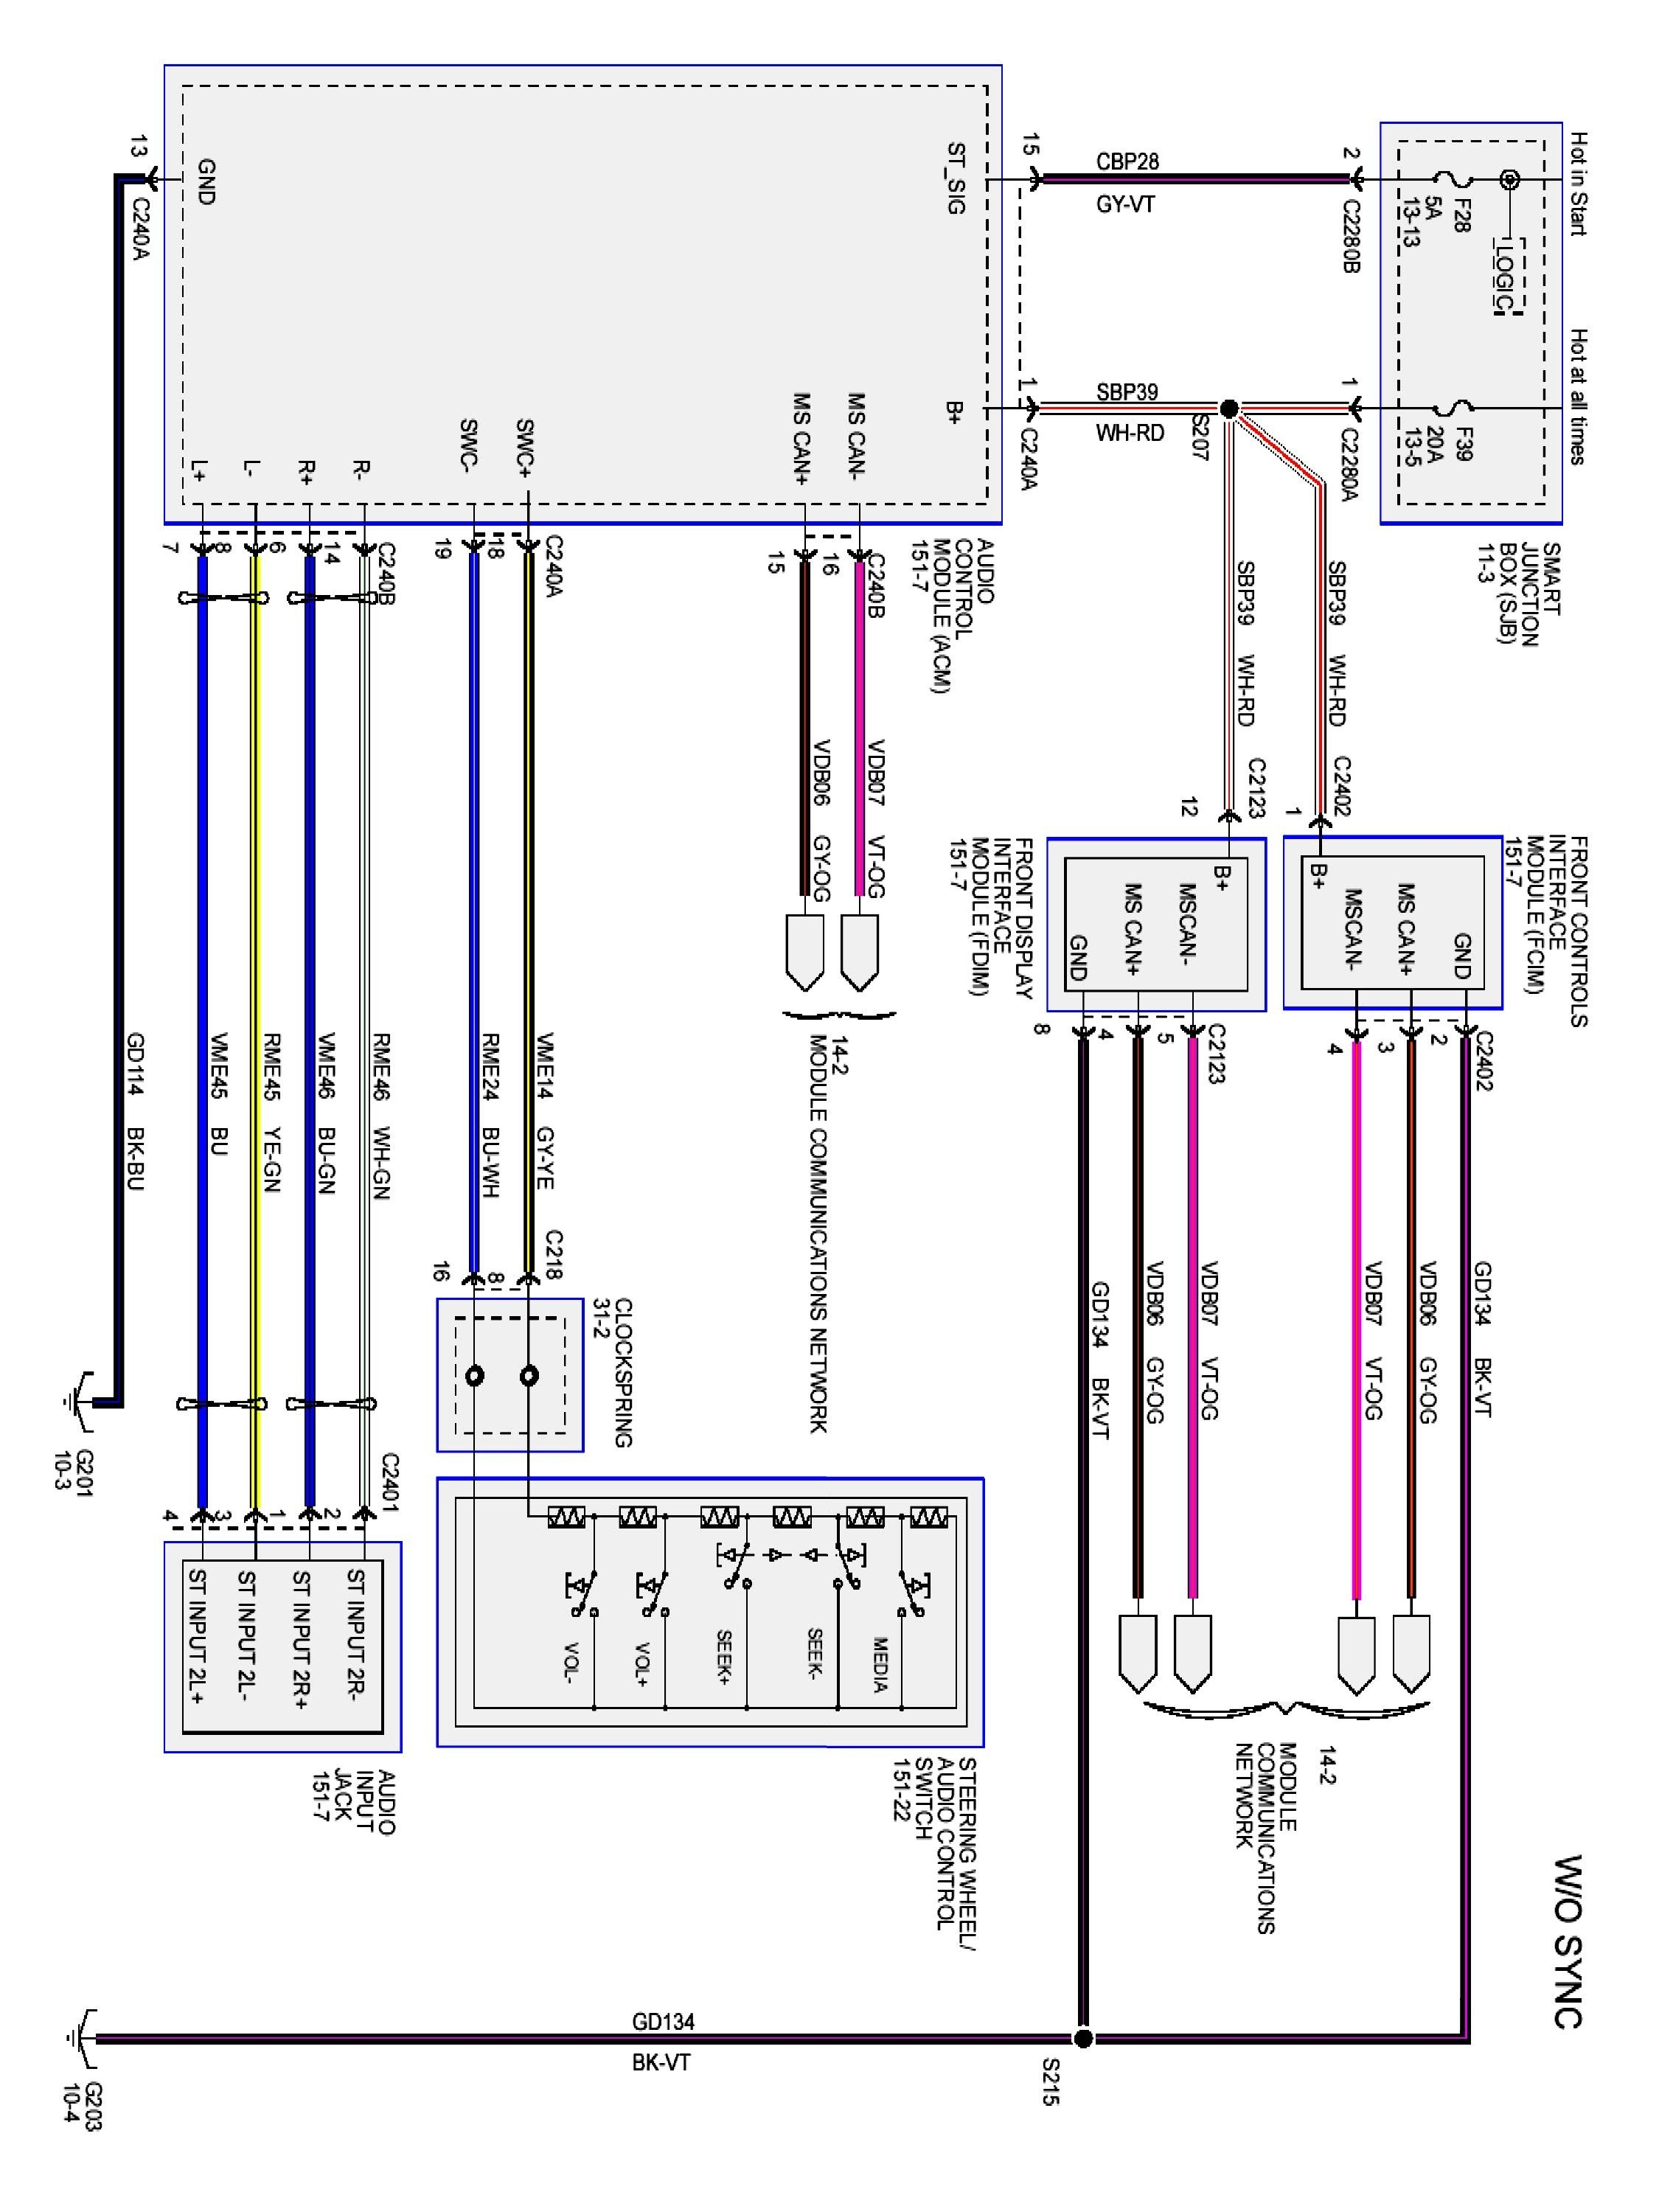 2001 Ford Taurus Radio Wiring Diagram Dual Harness Jensen Car Cables Chevy Kit Speaker Wire Stereo